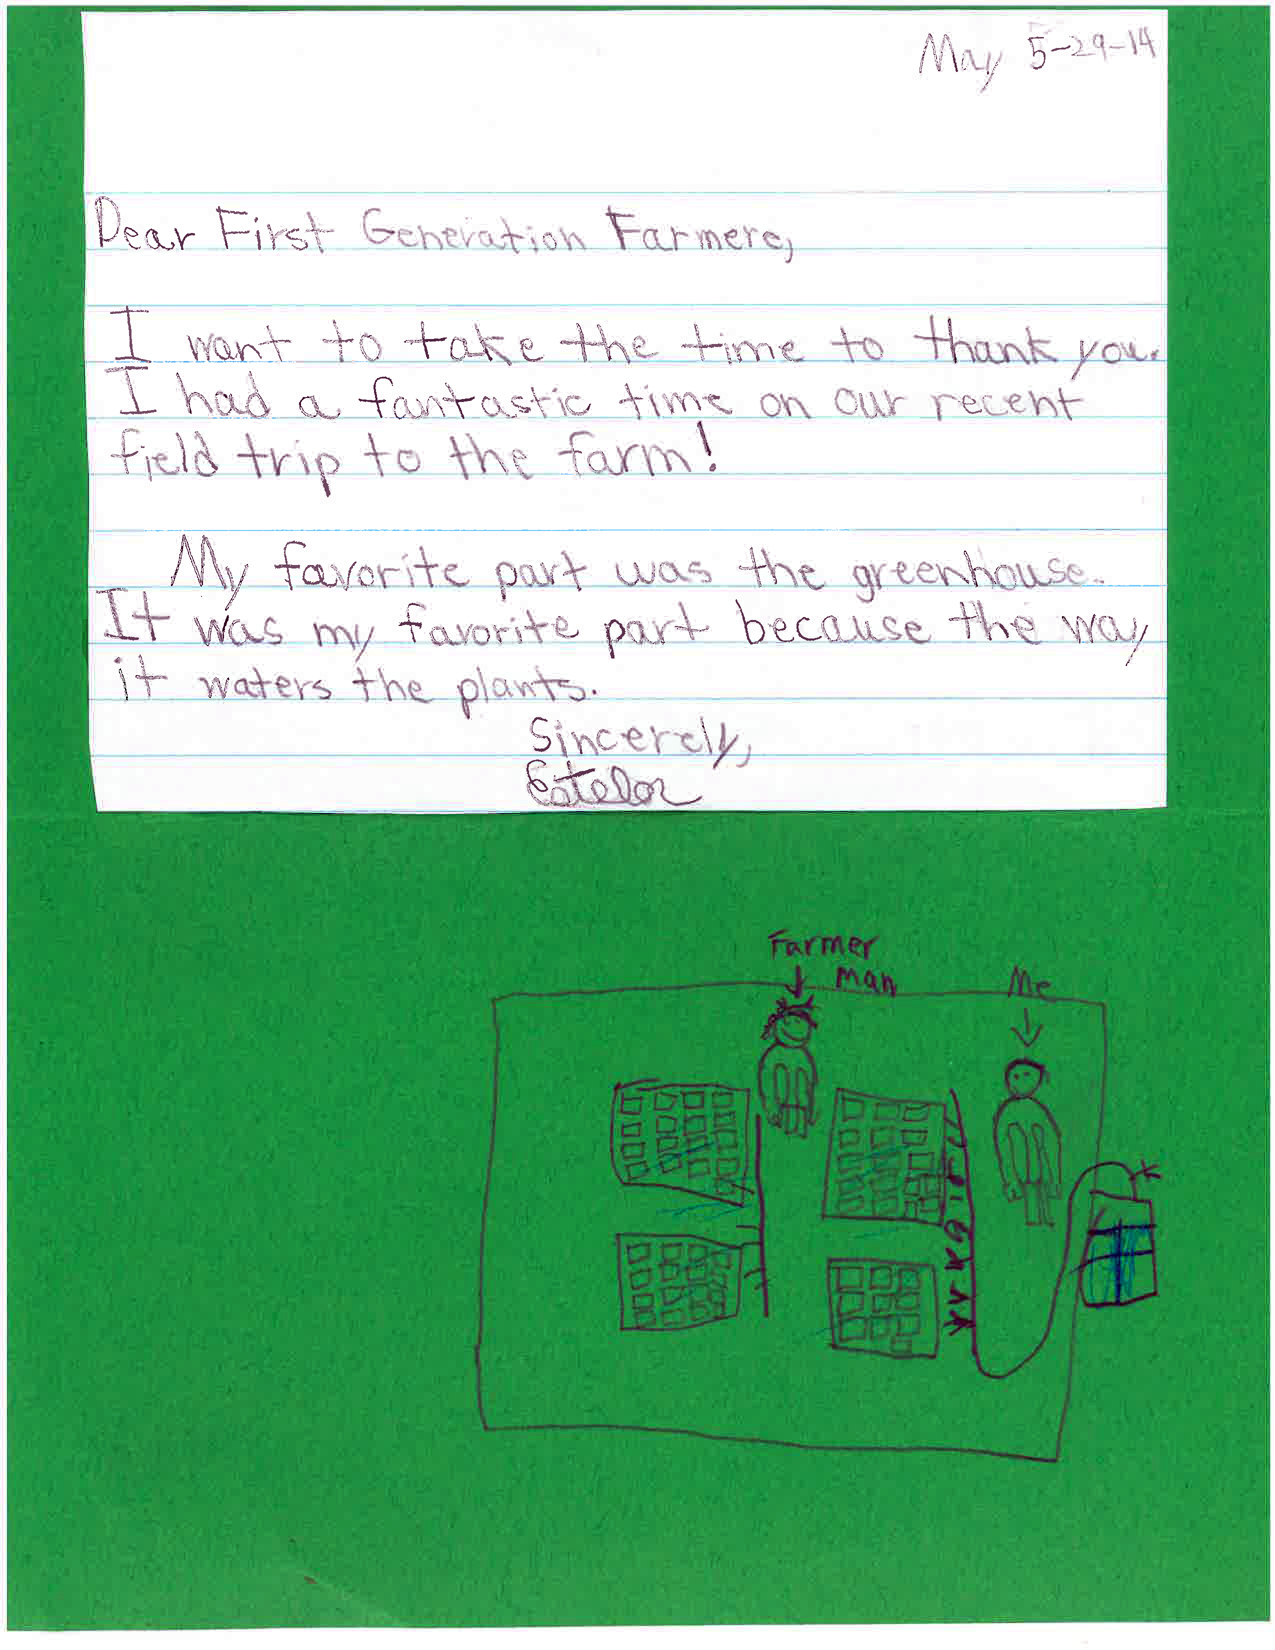 Another letter from student to first generation farmers